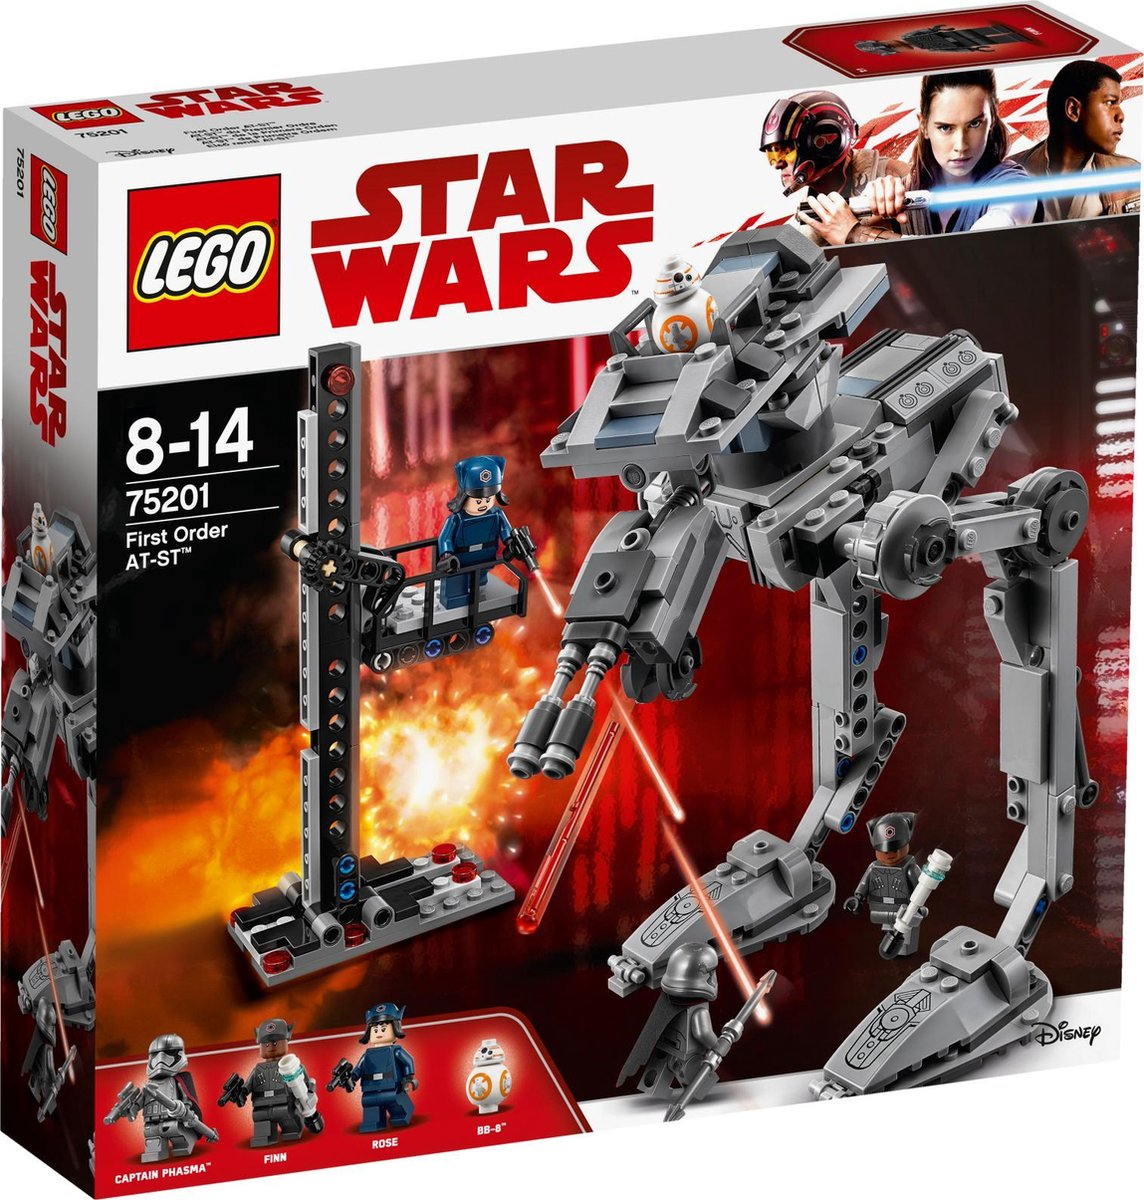 LEGO Star Wars 75201 - First Order AT-ST